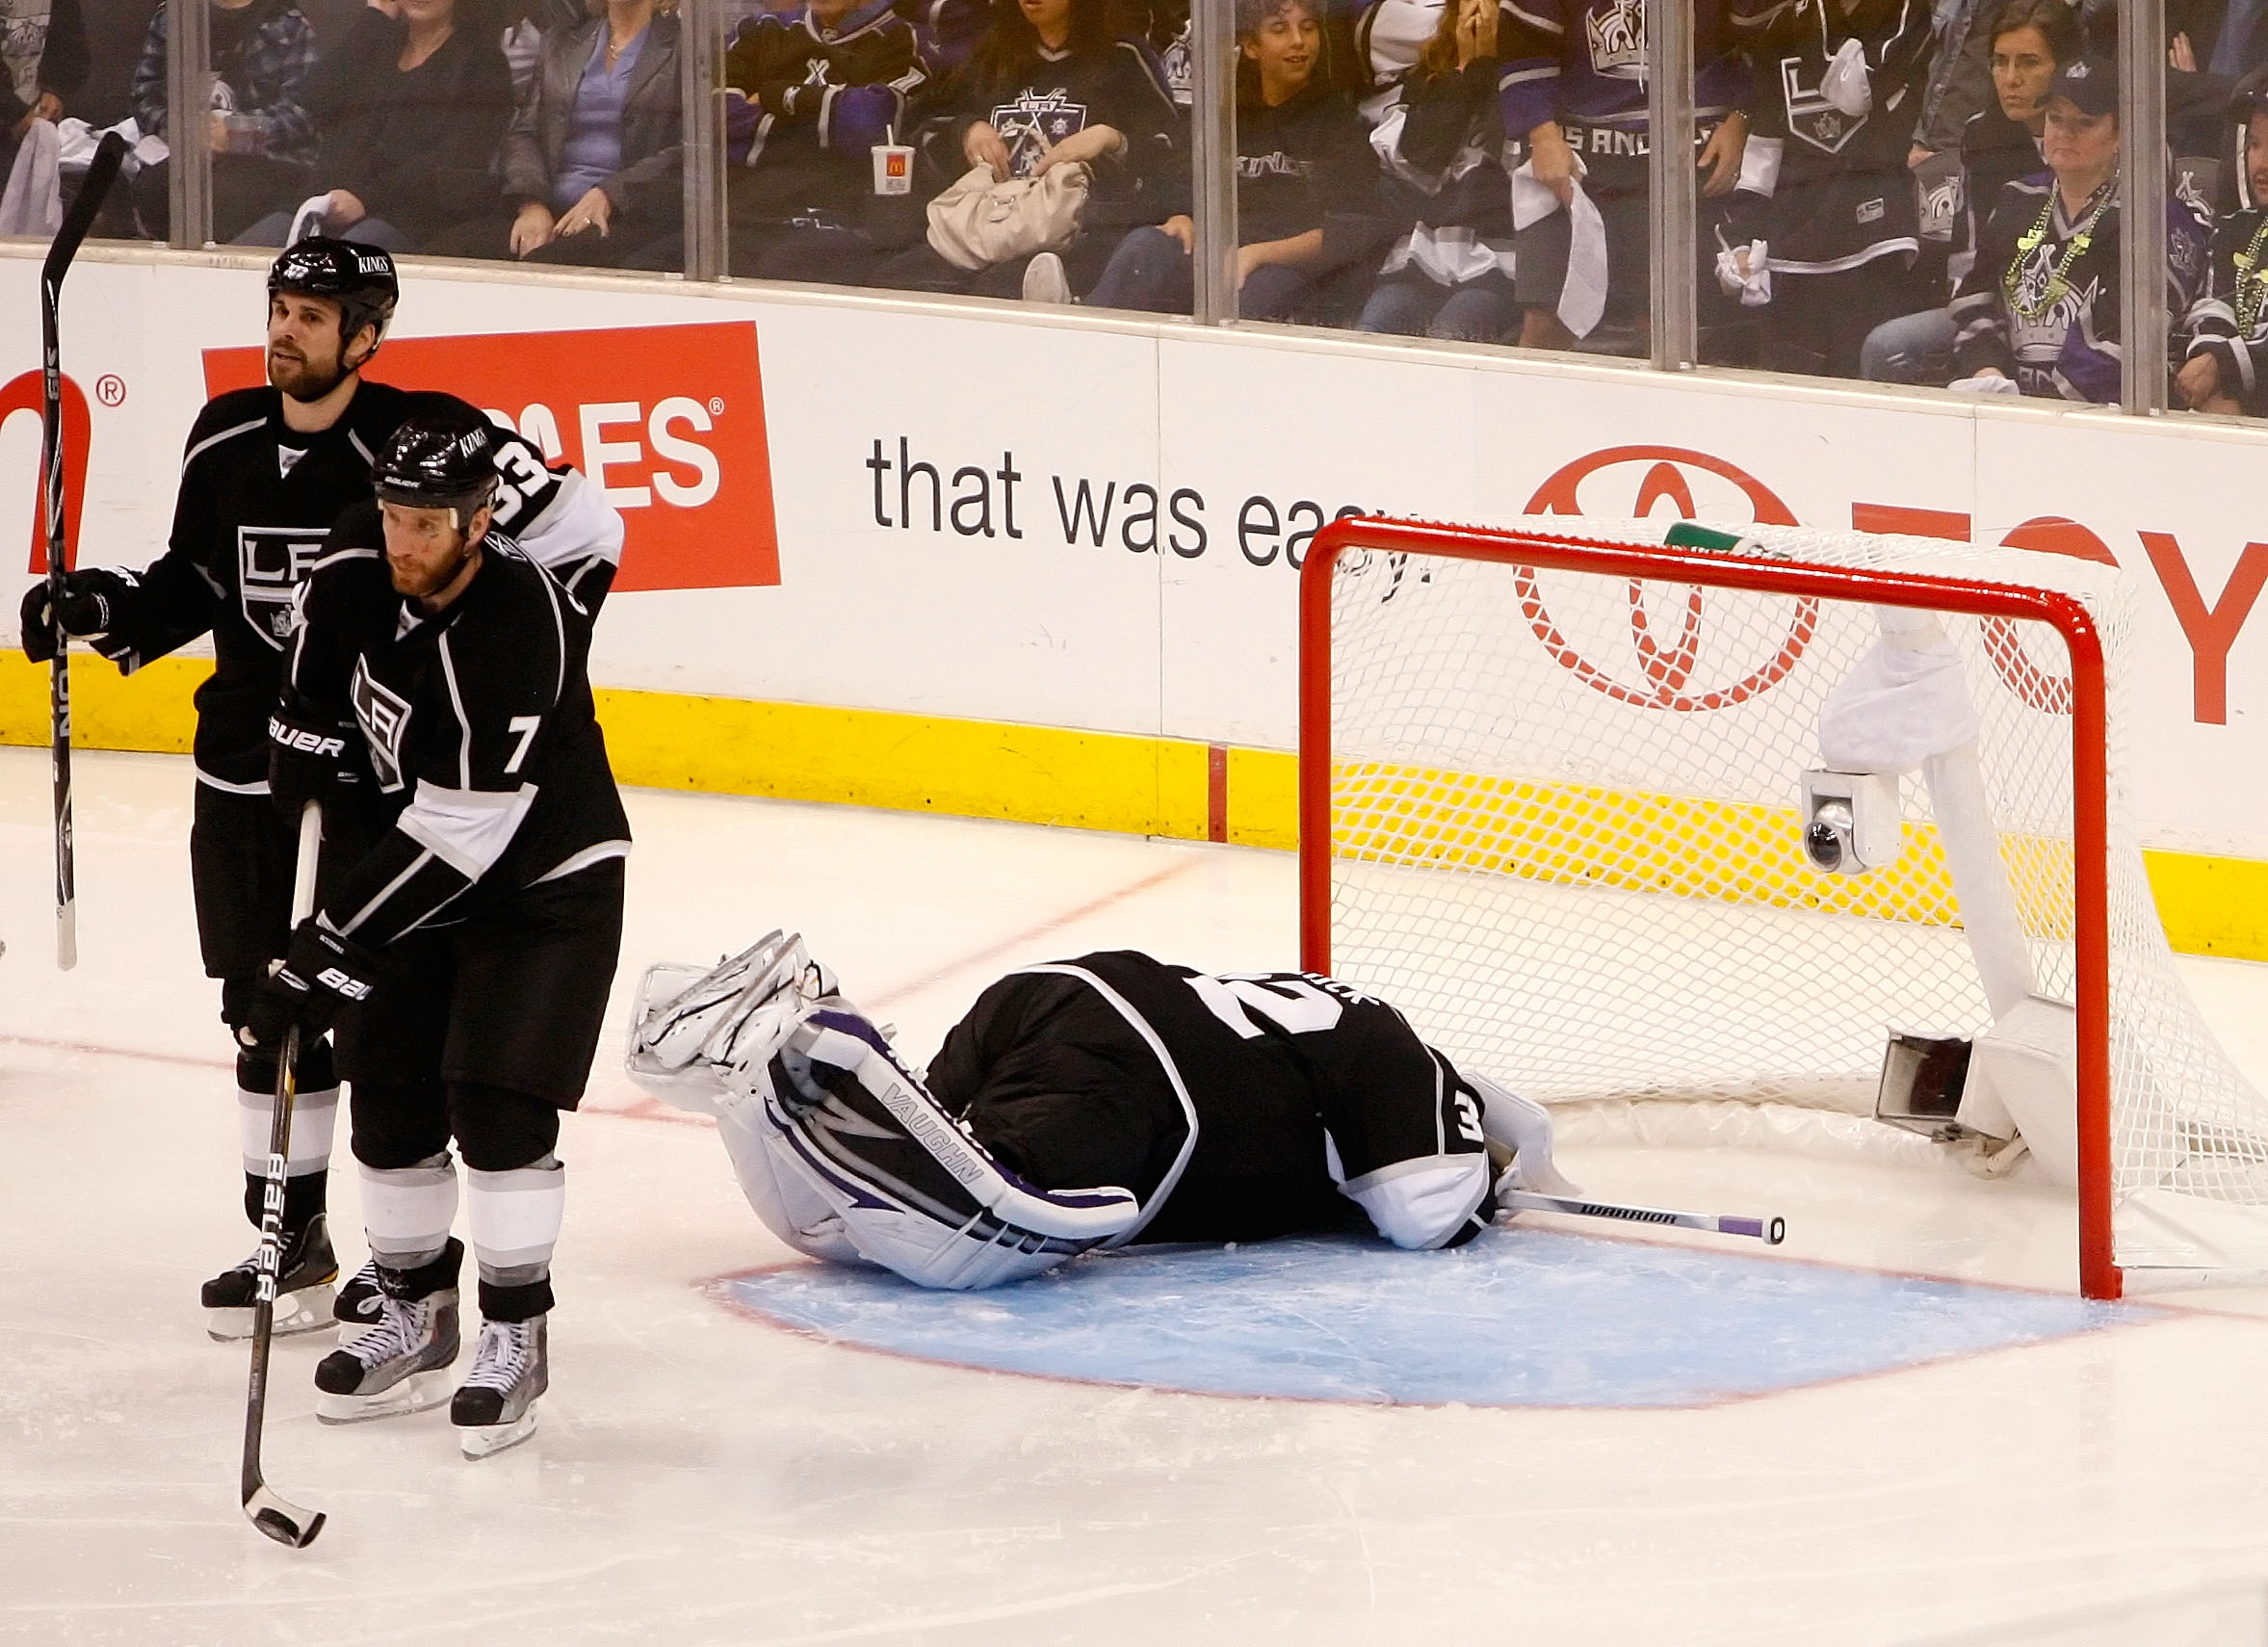 The San Jose Sharks completed one of the four biggest comebacks in NHL history